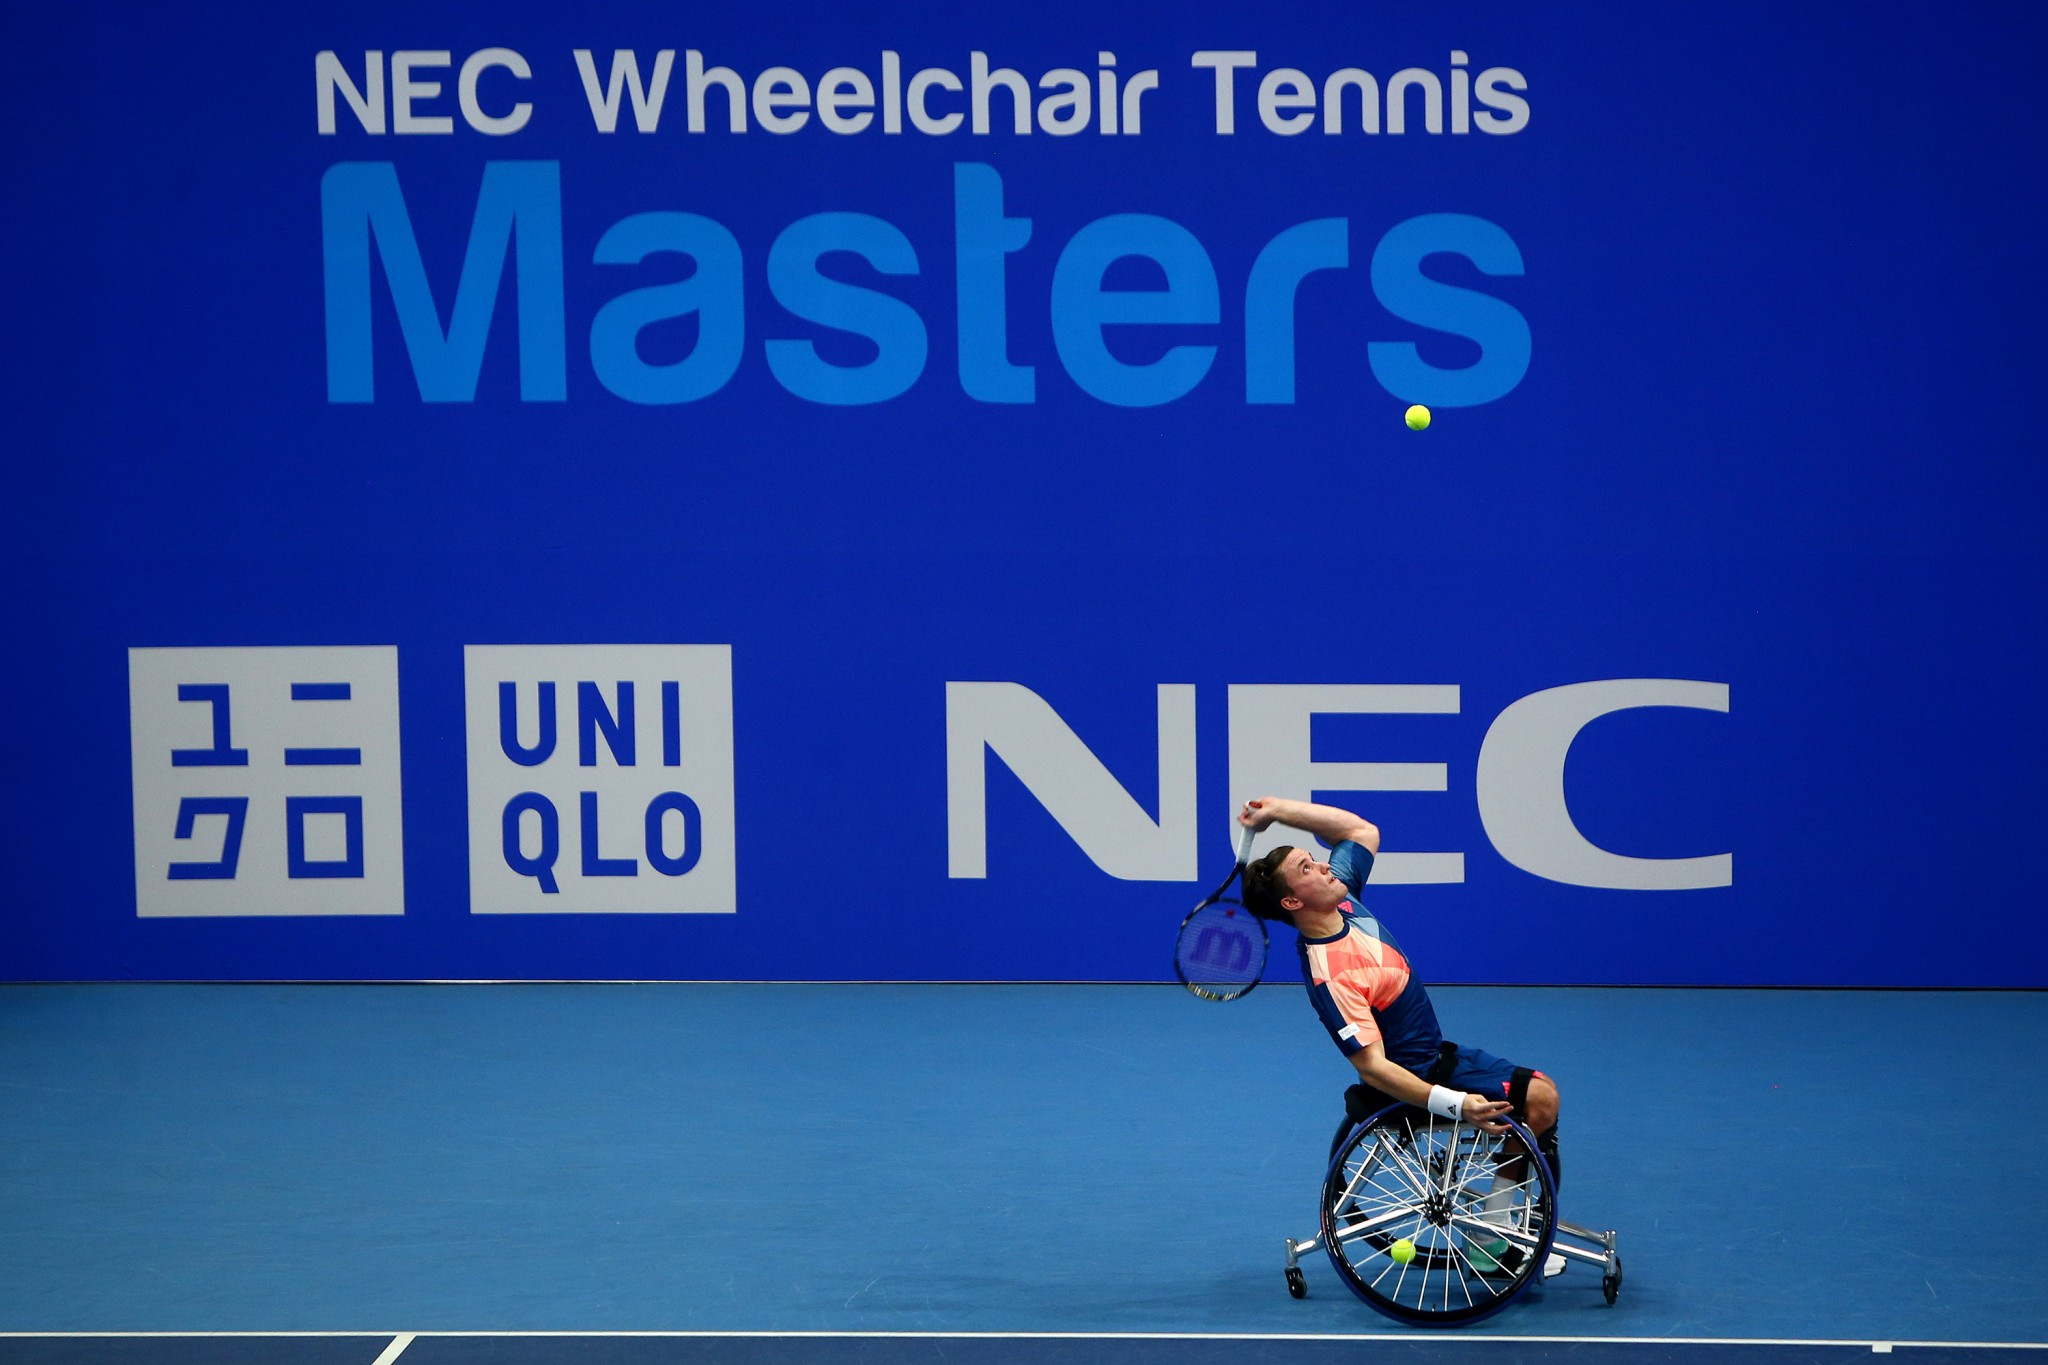 The Wheelchair Tennis Masters has been re-located to Loughborough ©Getty Images